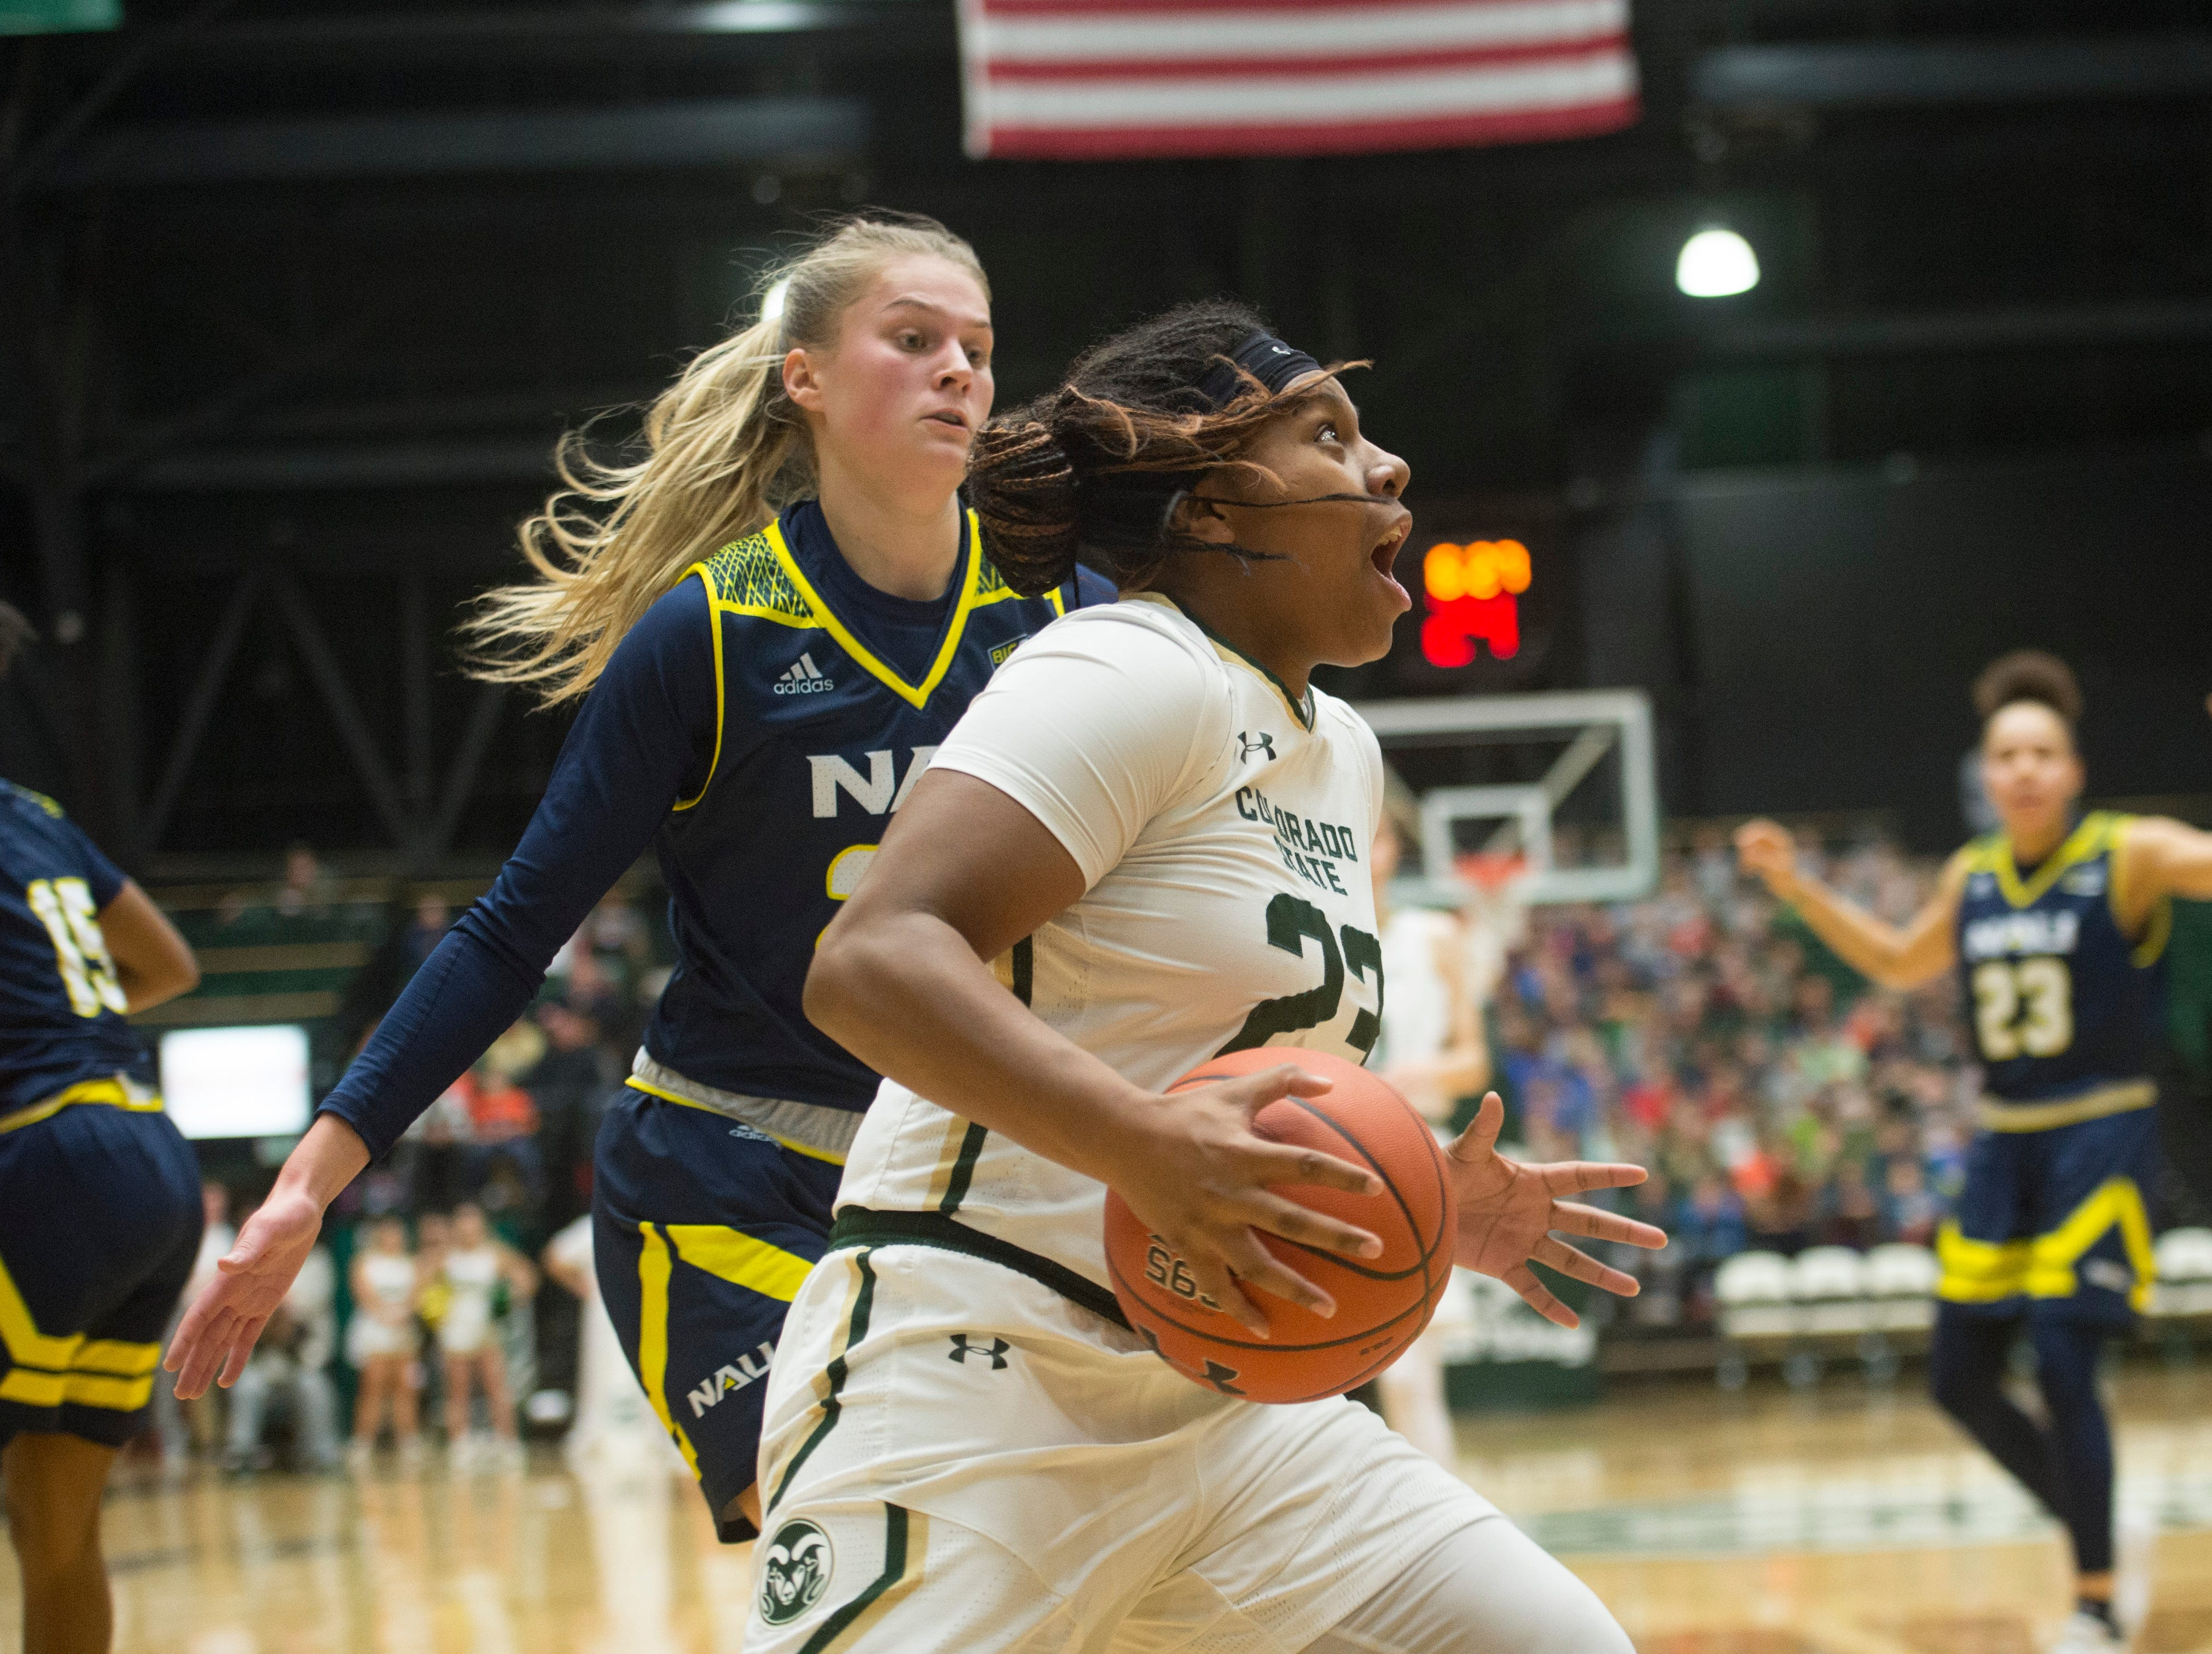 CSU guard Grace Colaivalu looks up during a drive to the basket during a game against Northern Arizona at Moby Arena on Wednesday, December 5, 2018.